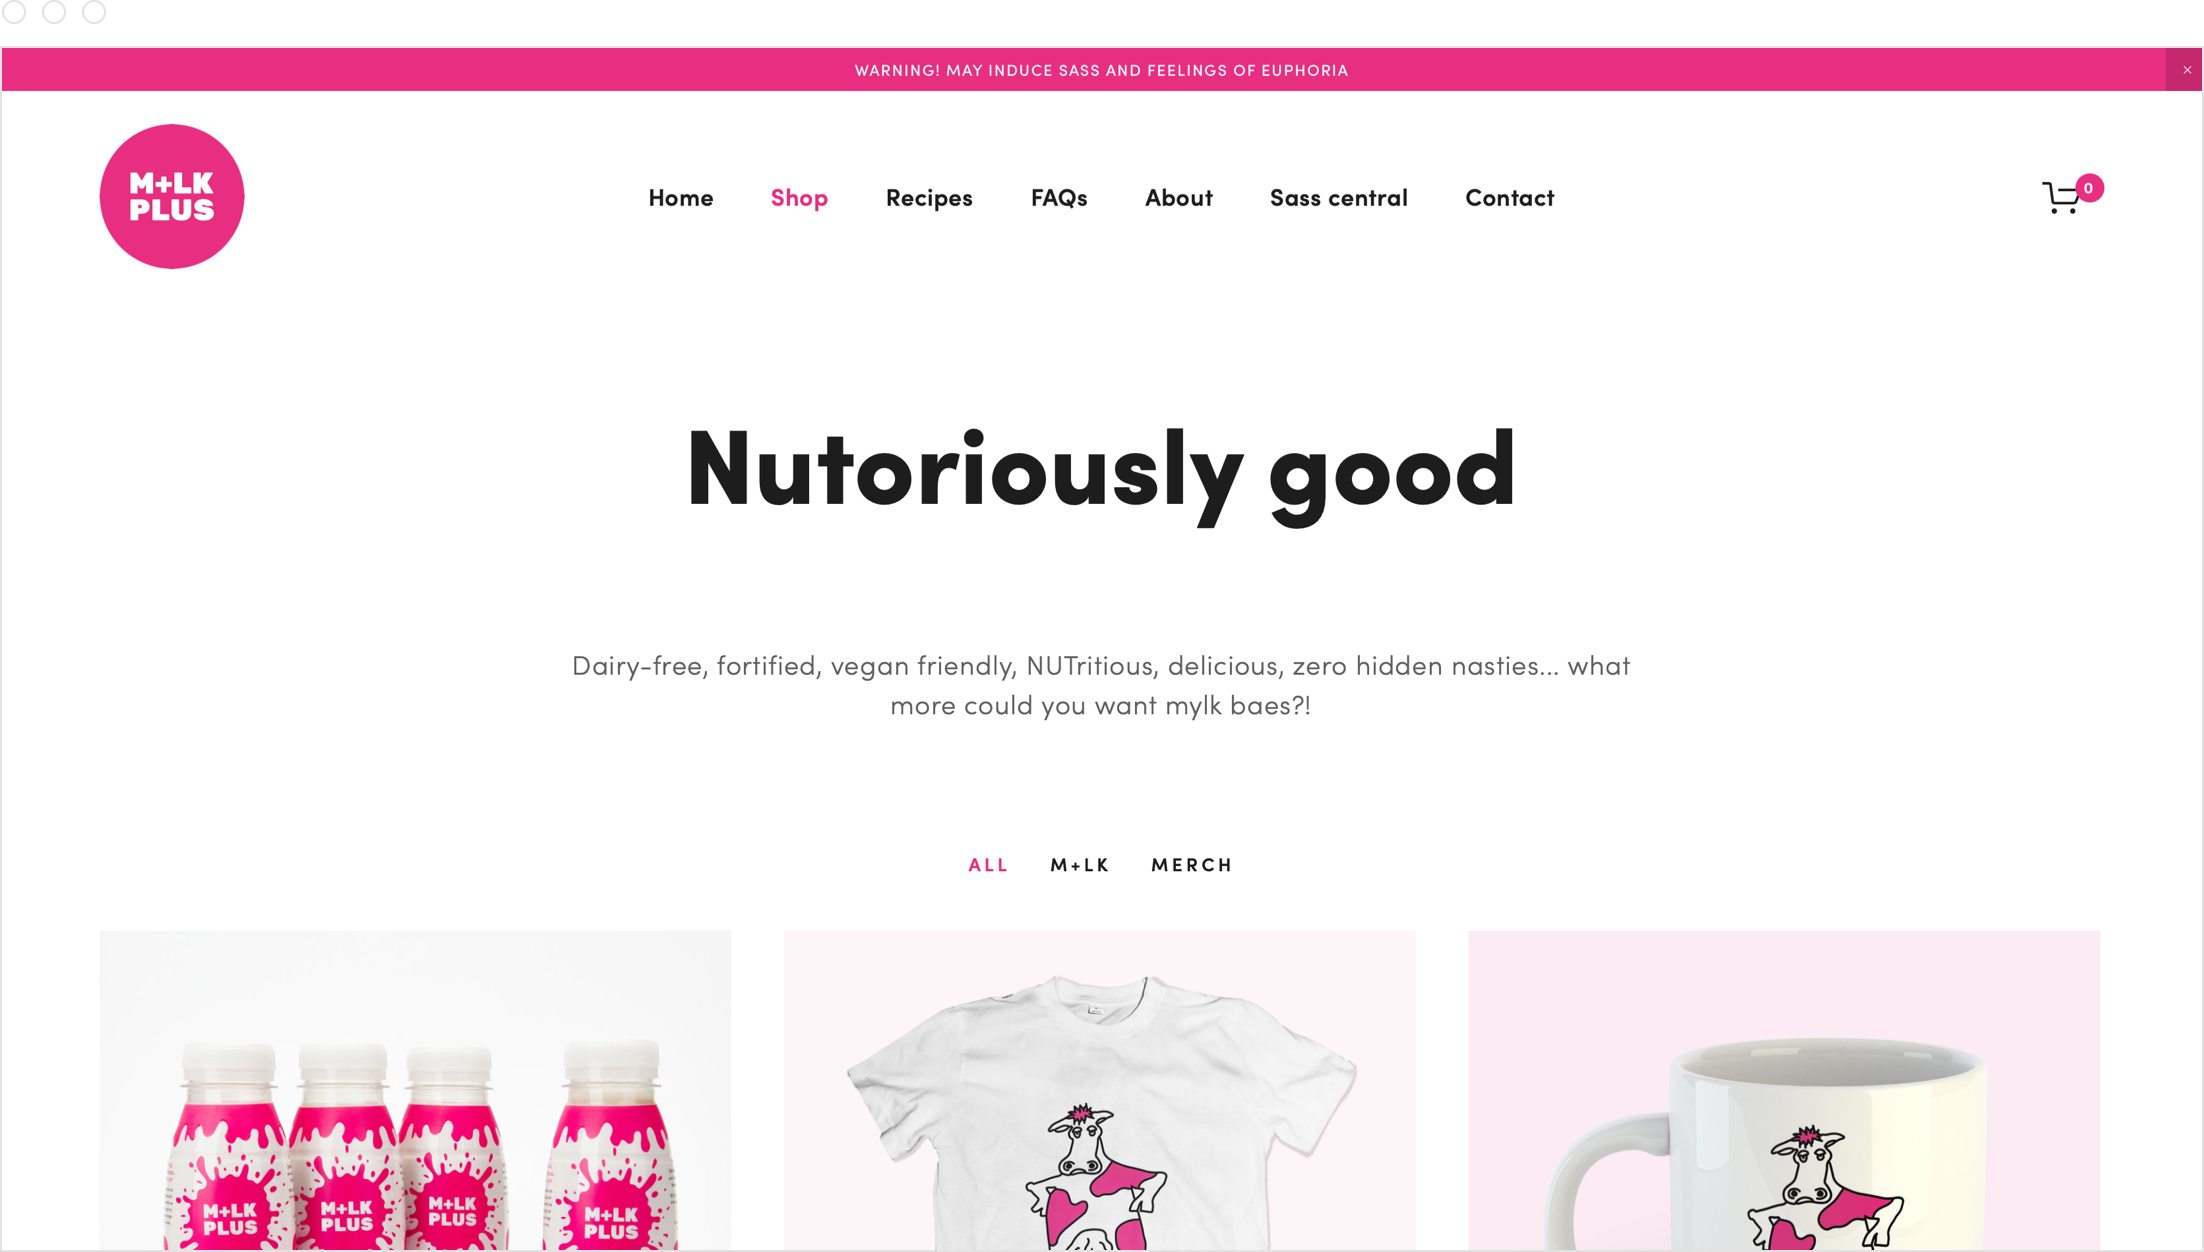 Creative, colourful and bright website design by Jack Watkins for Camilla Ainsworth's nut milk brand, M+LKPLUS